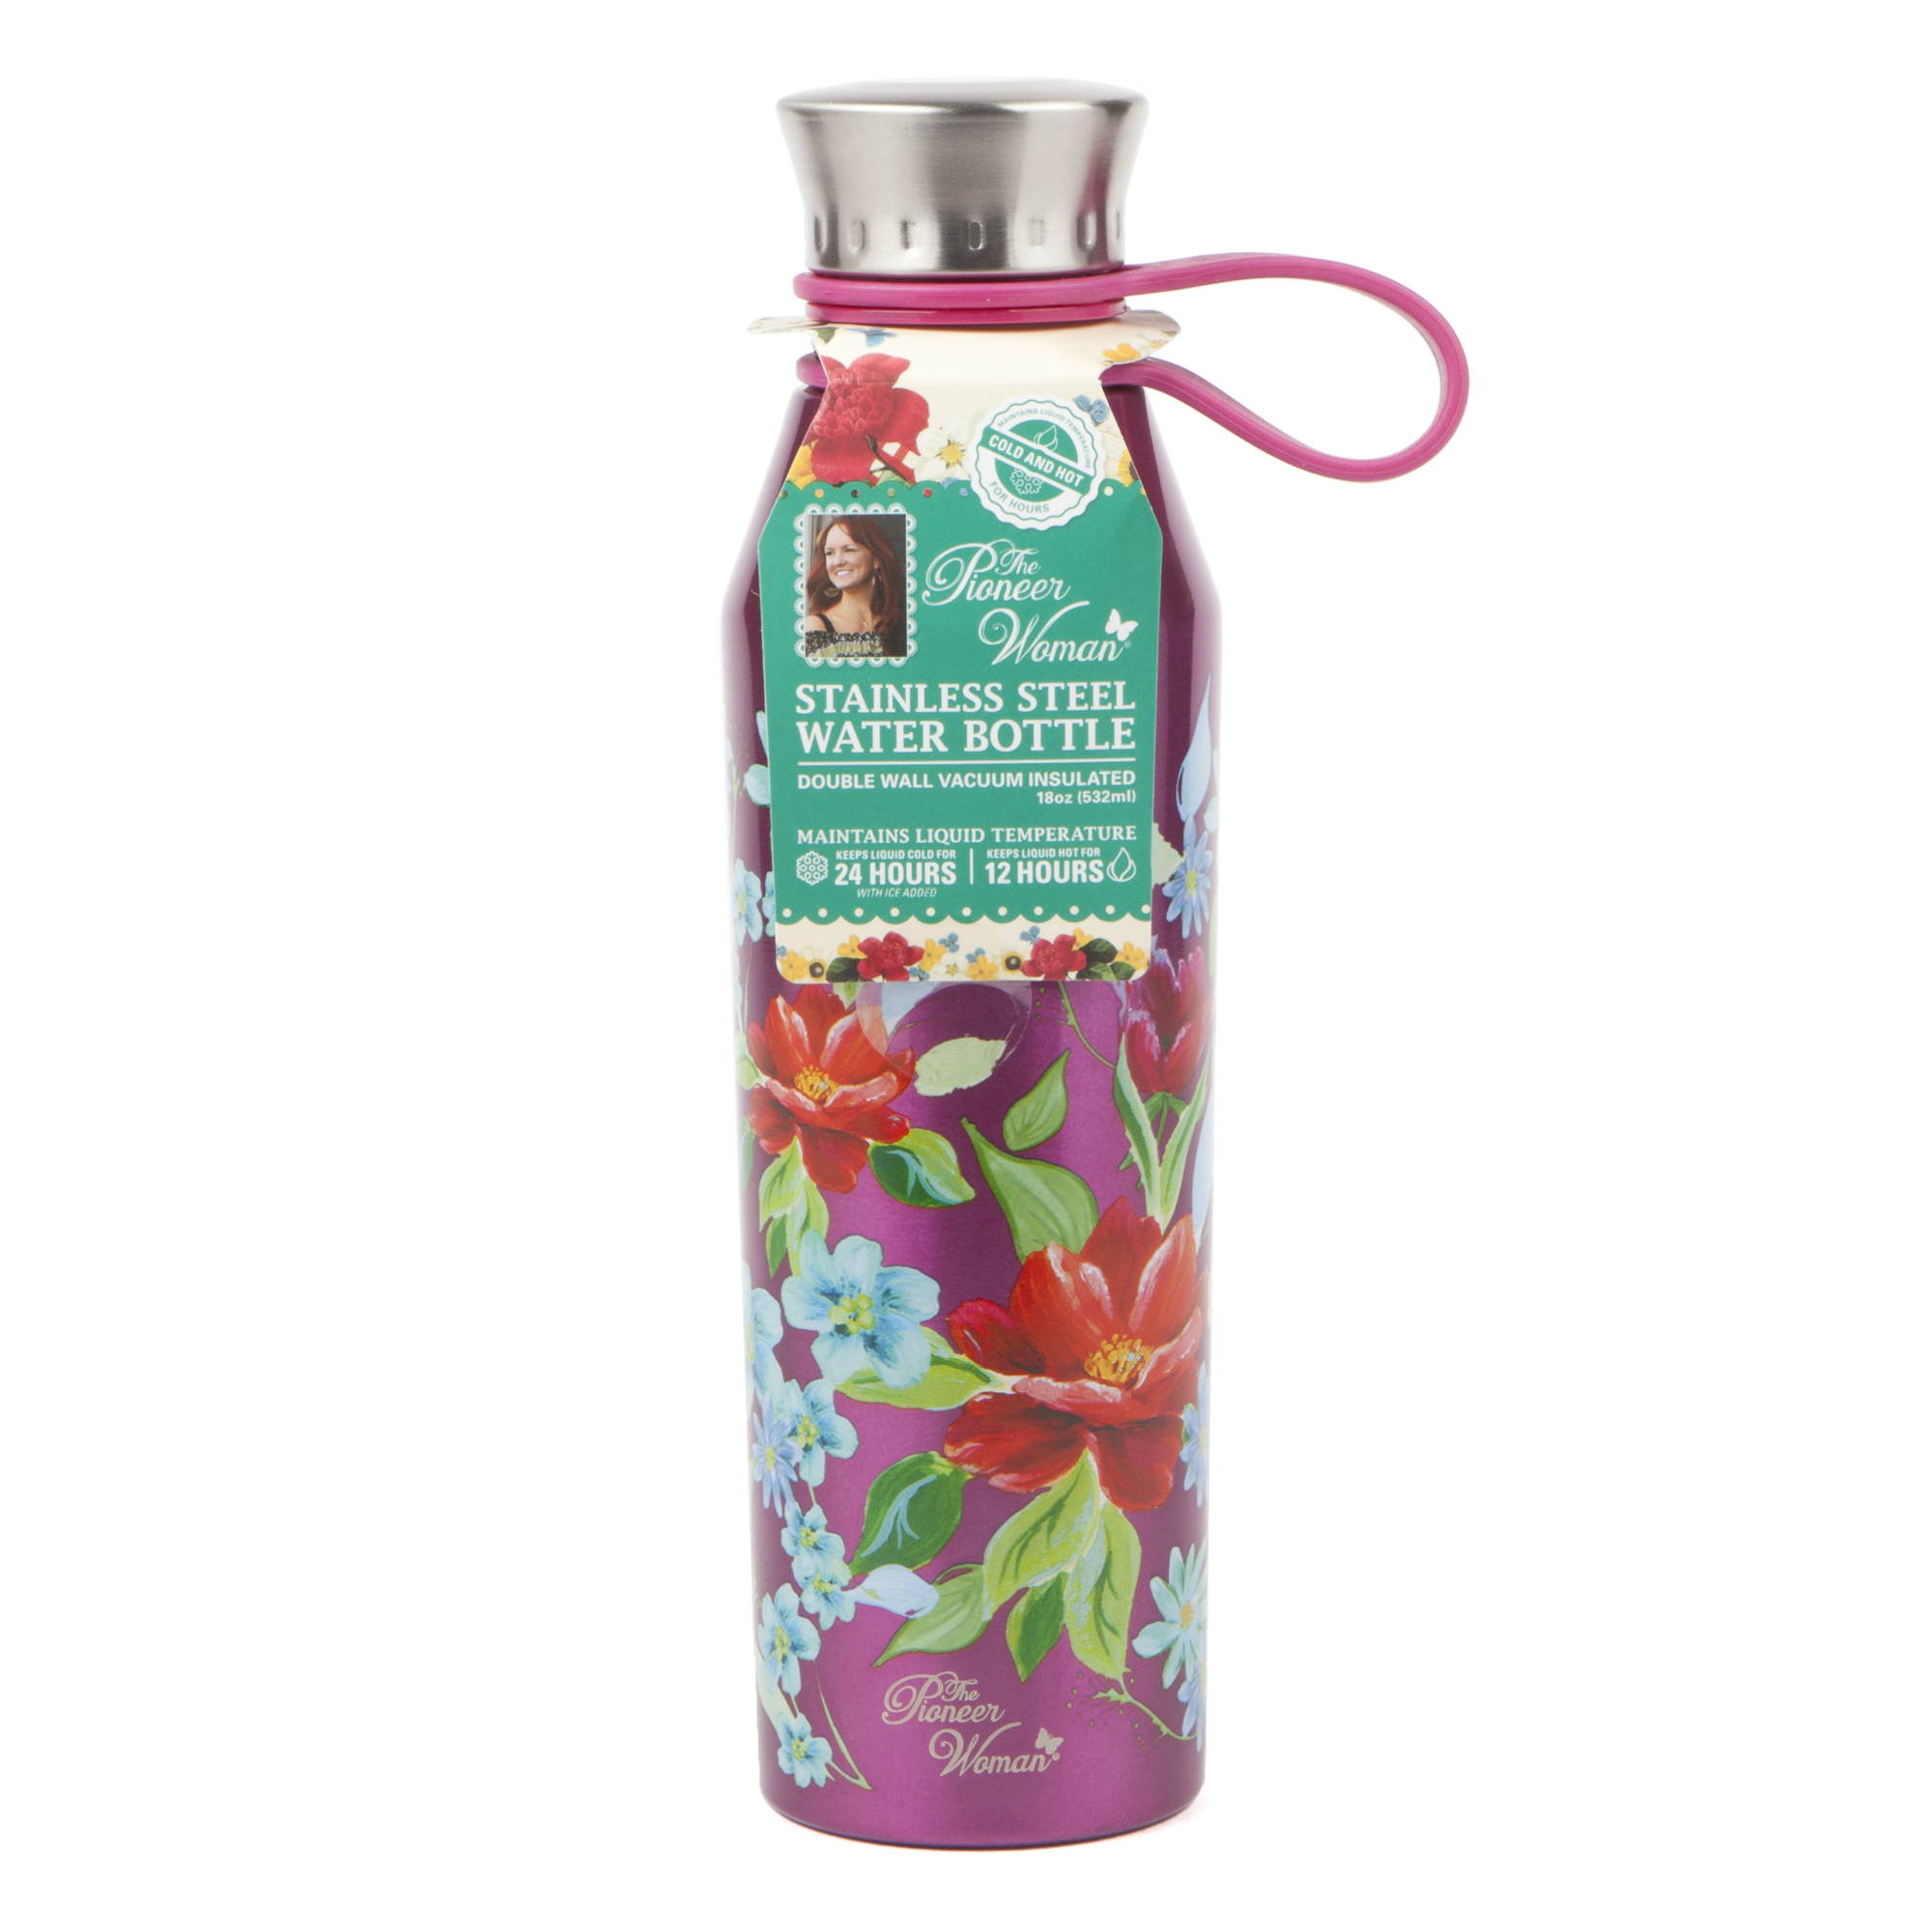 The Pioneer Woman 18oz Double Wall Vacuum Insulated Pink Stainless Steel Water Bottle by core home